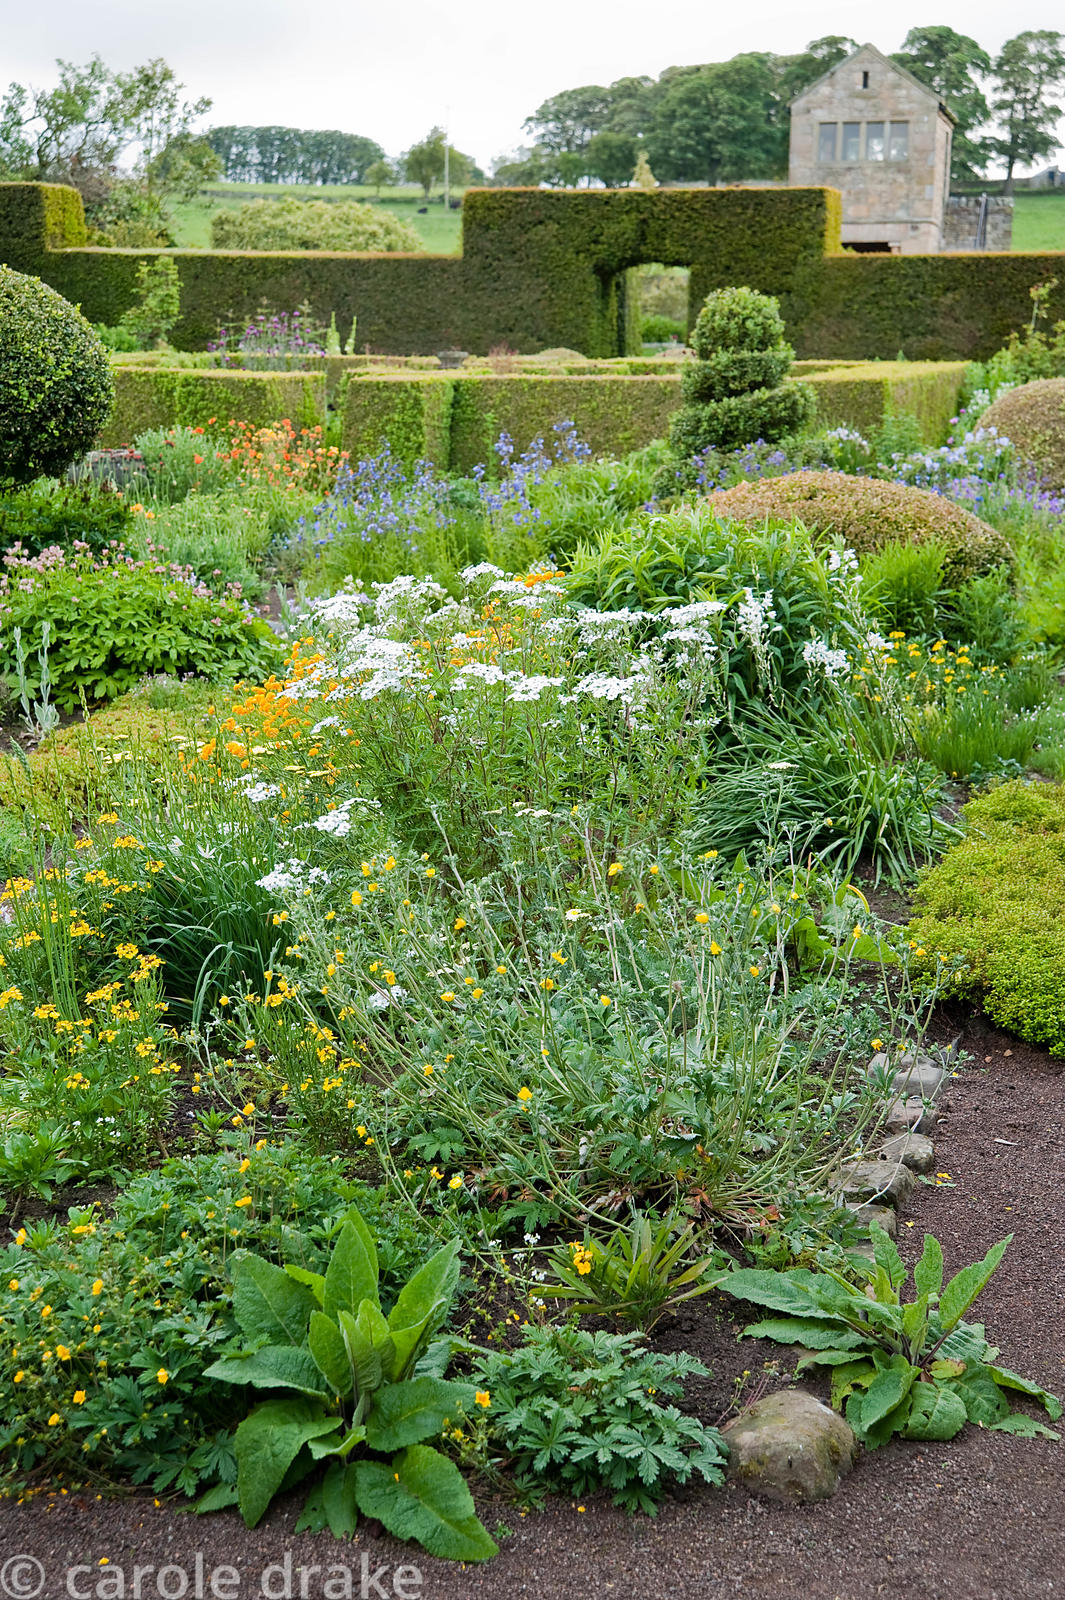 The Flower Garden features strong blocks of box and yew that frame cottage garden plants and flowers, here including achillea...